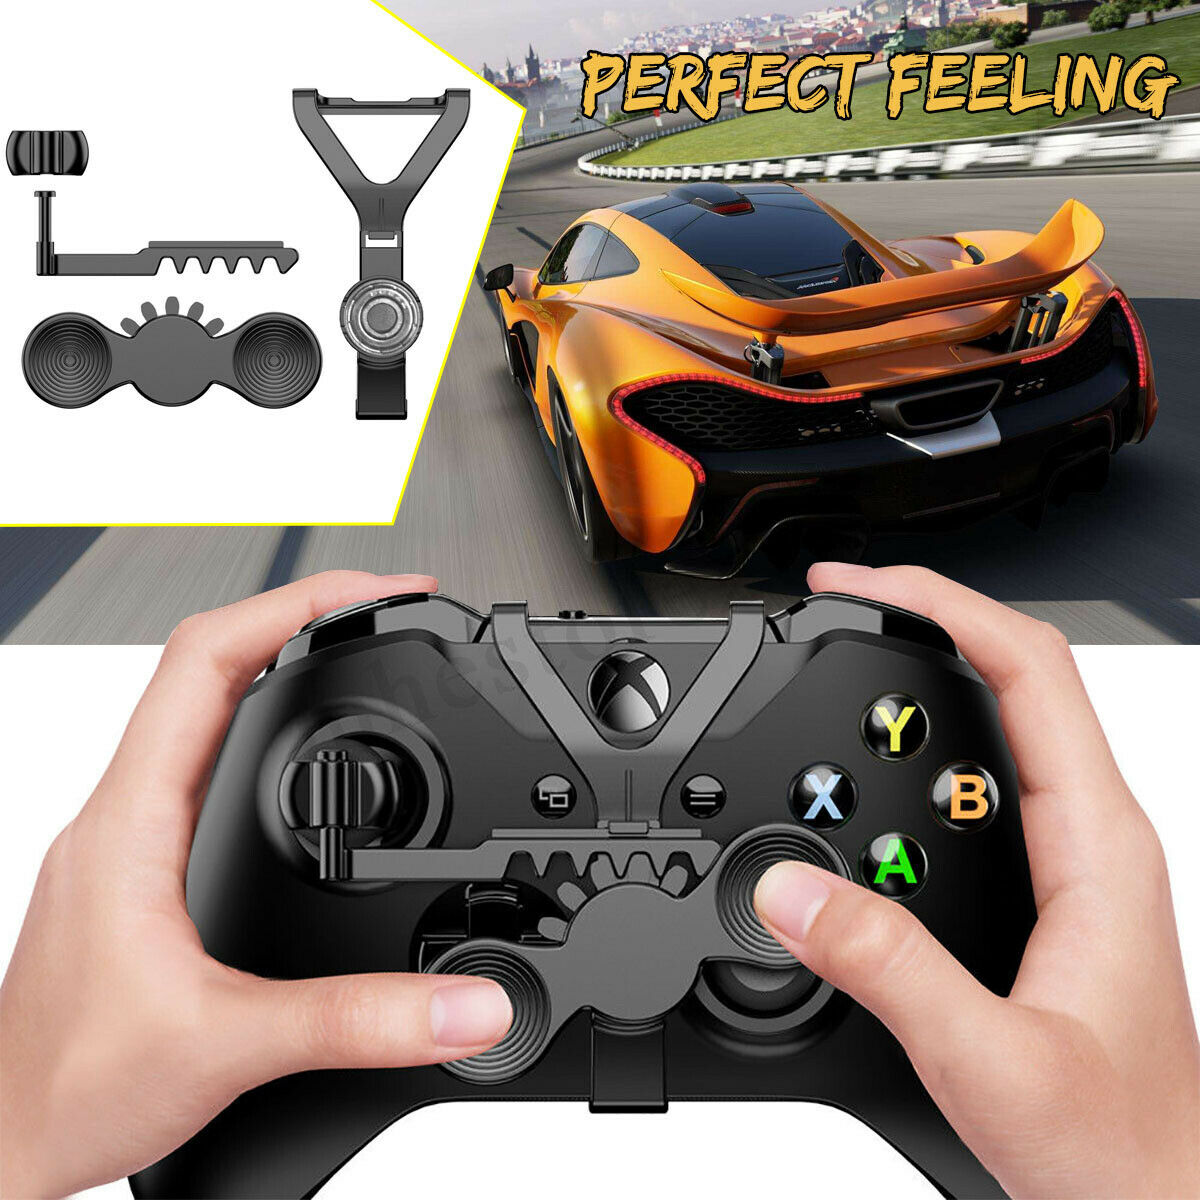 2019 Mini Steering Wheel Add-on Replacement Gaming Parts For Xbox One Game Controller image